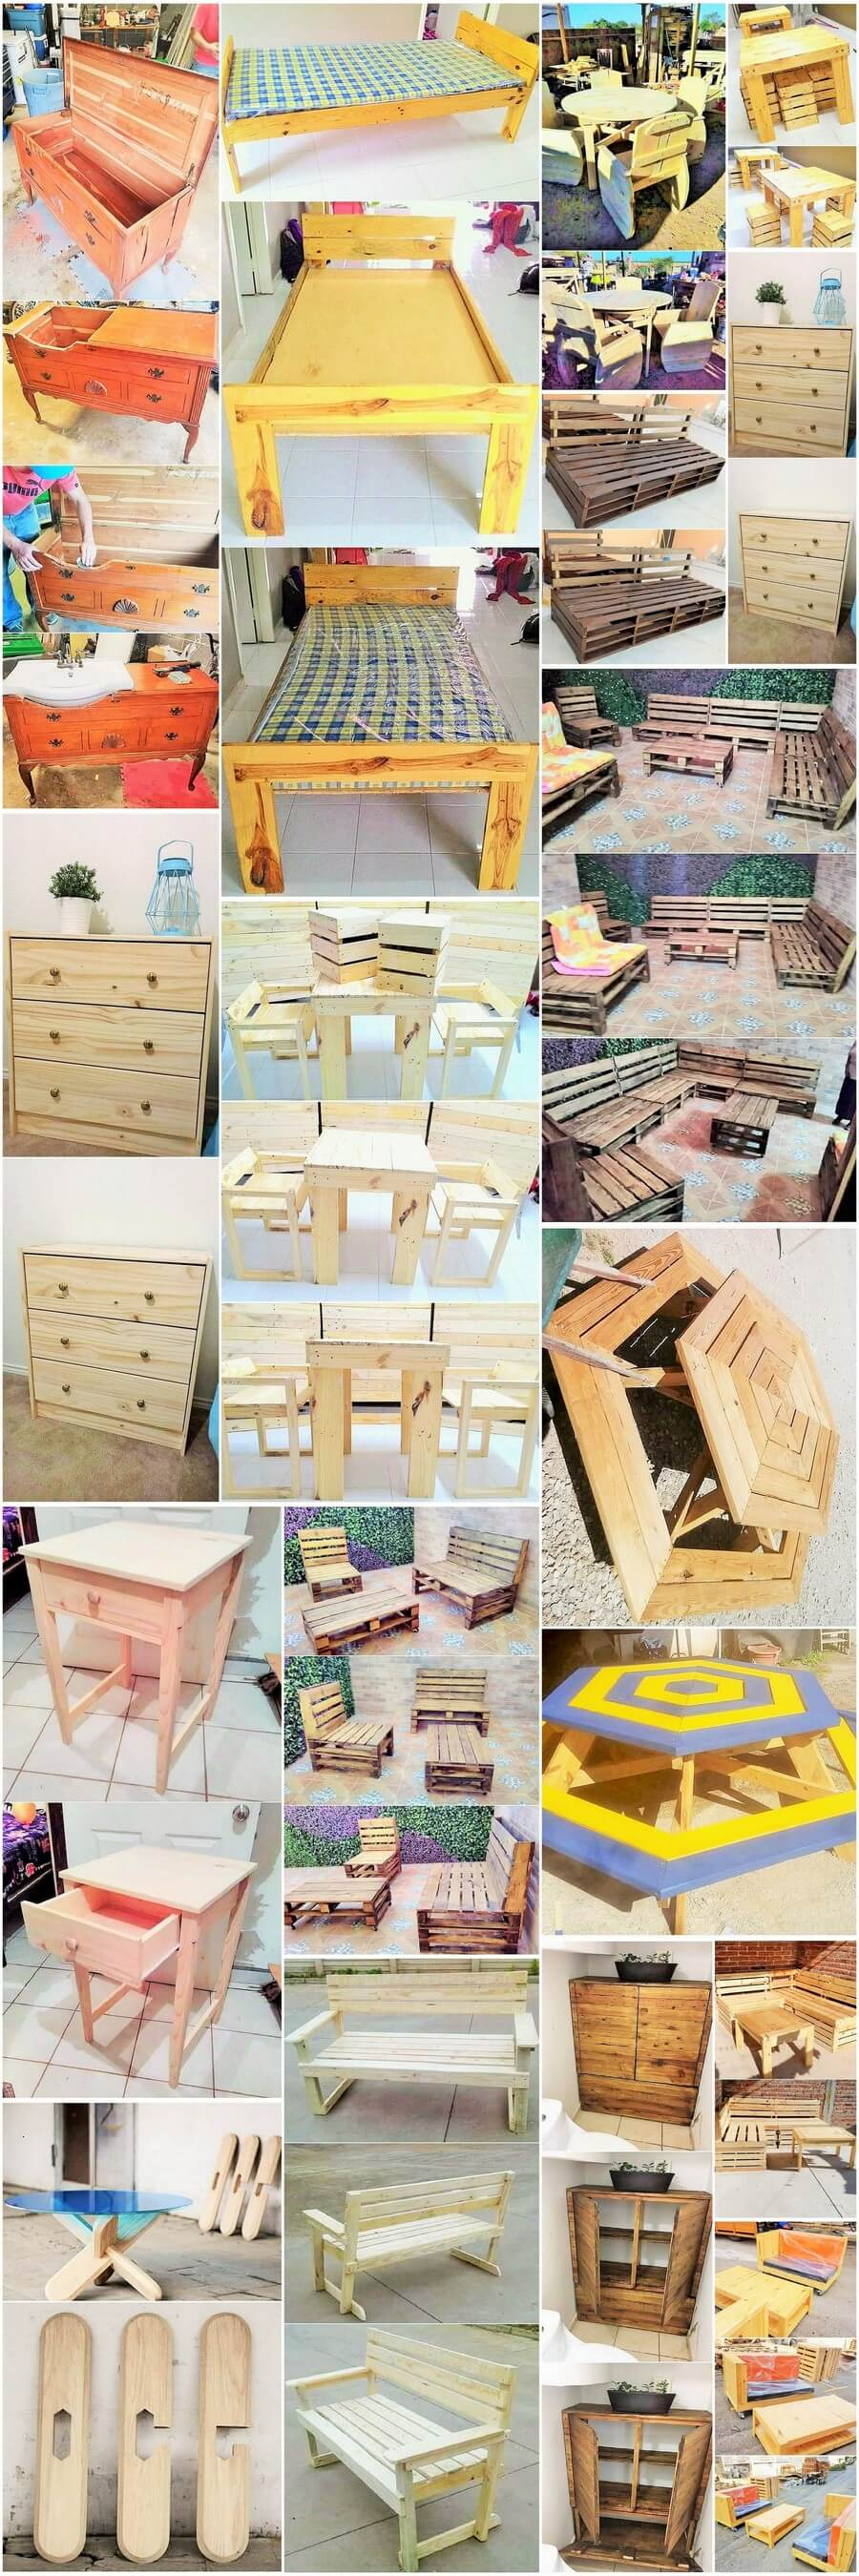 Old pallet recyclable furniture